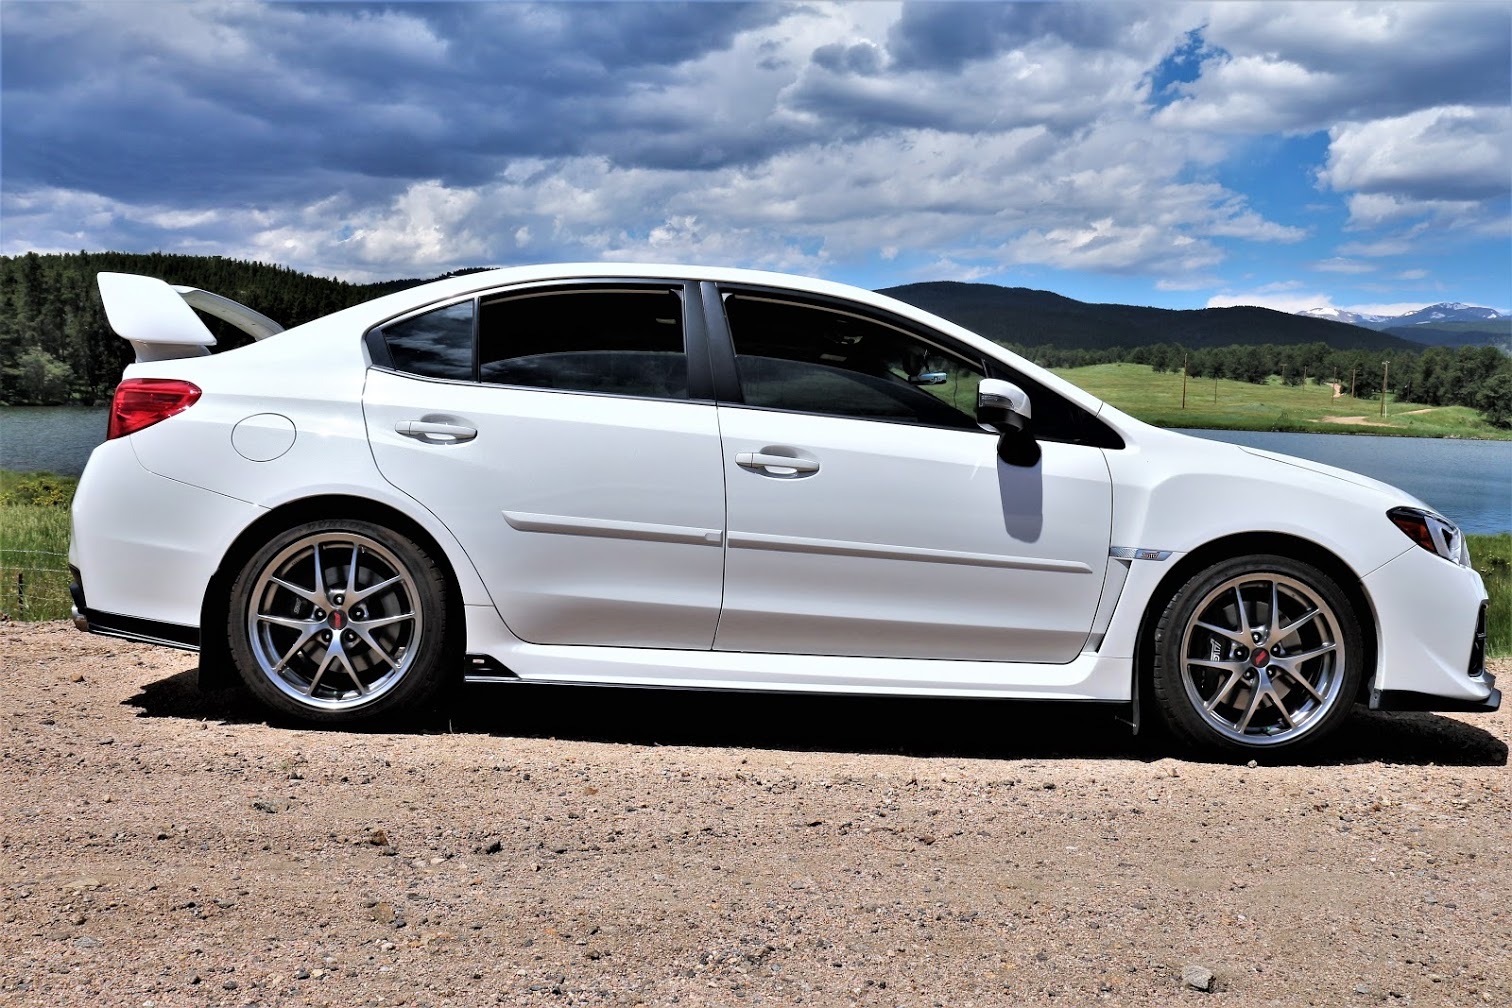 FS (USA,CO): 2015 STI Limited, 12k miles, Stock. As new.. ,990-img_8760-jpg